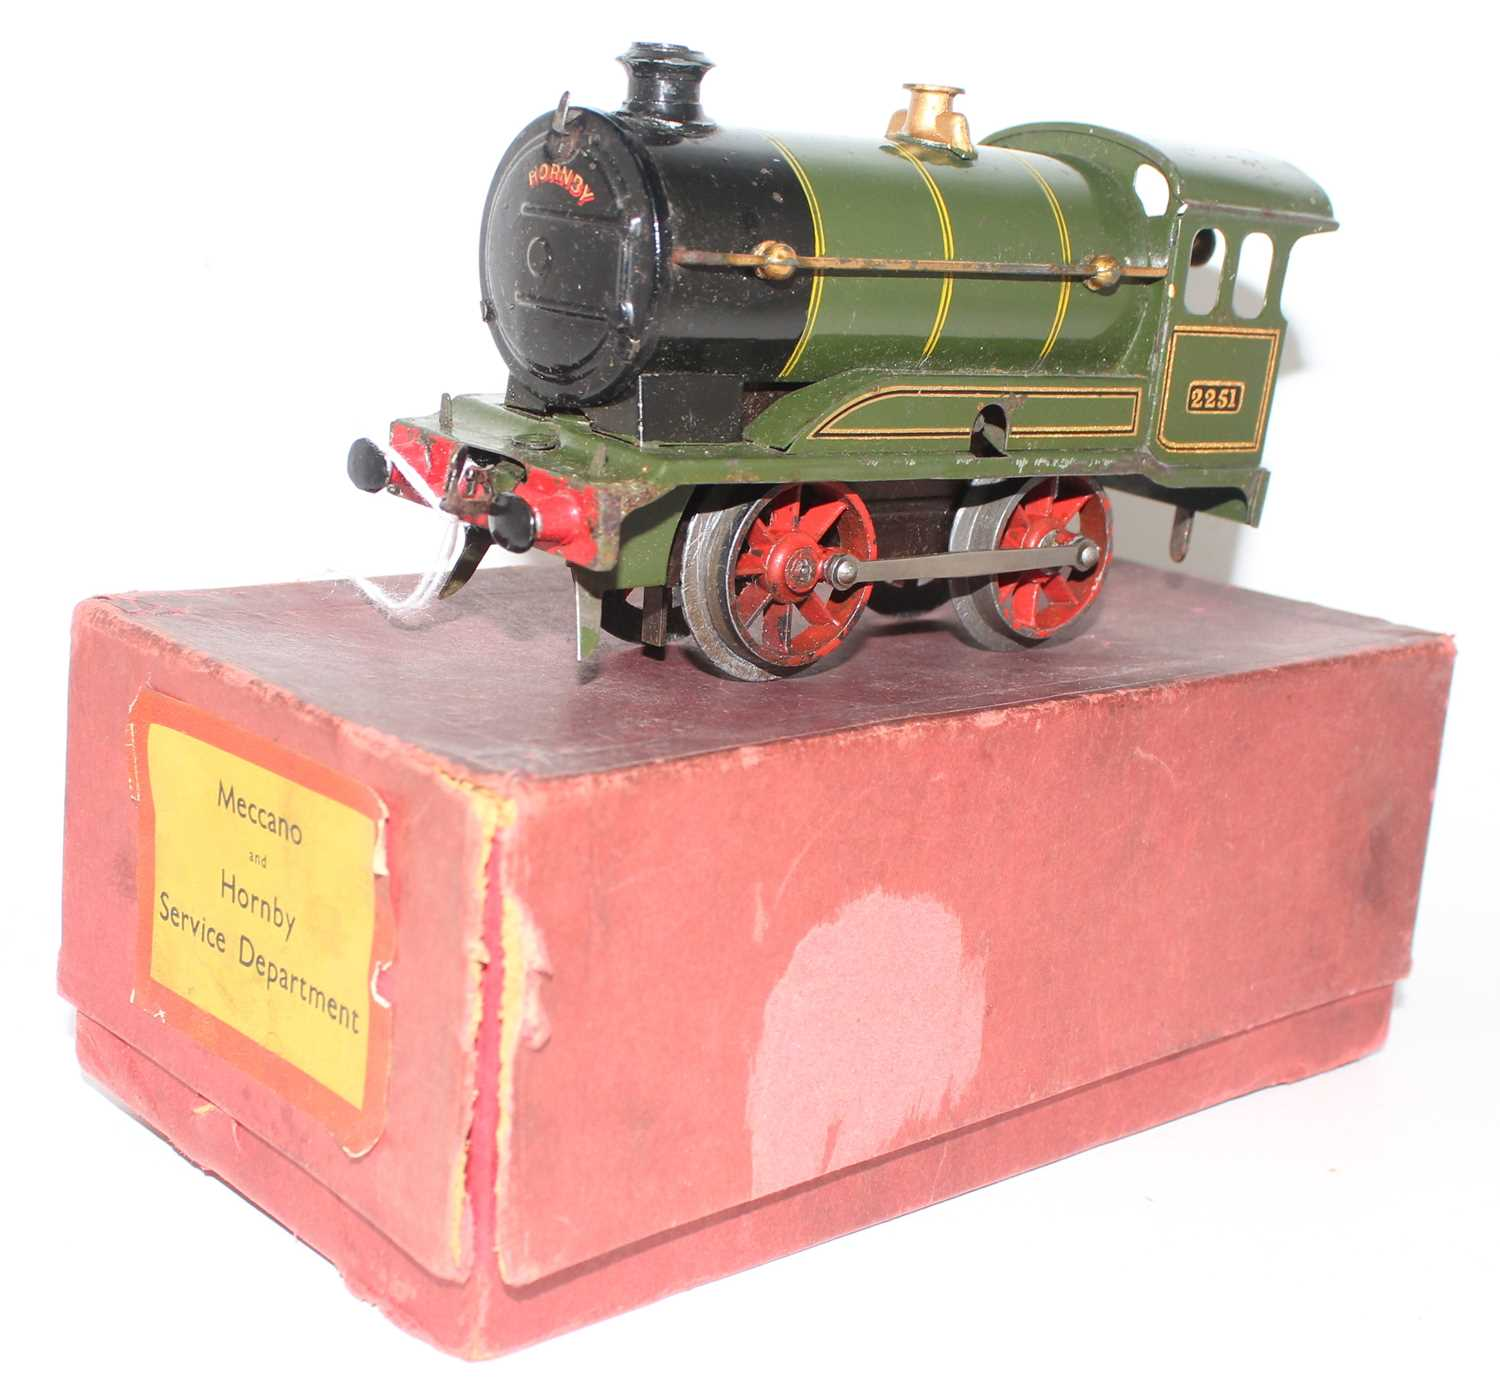 Hornby 1931-35 Clockwork No.0 revised body style 0-4-0 loco only, missing tender, GW Green, No.